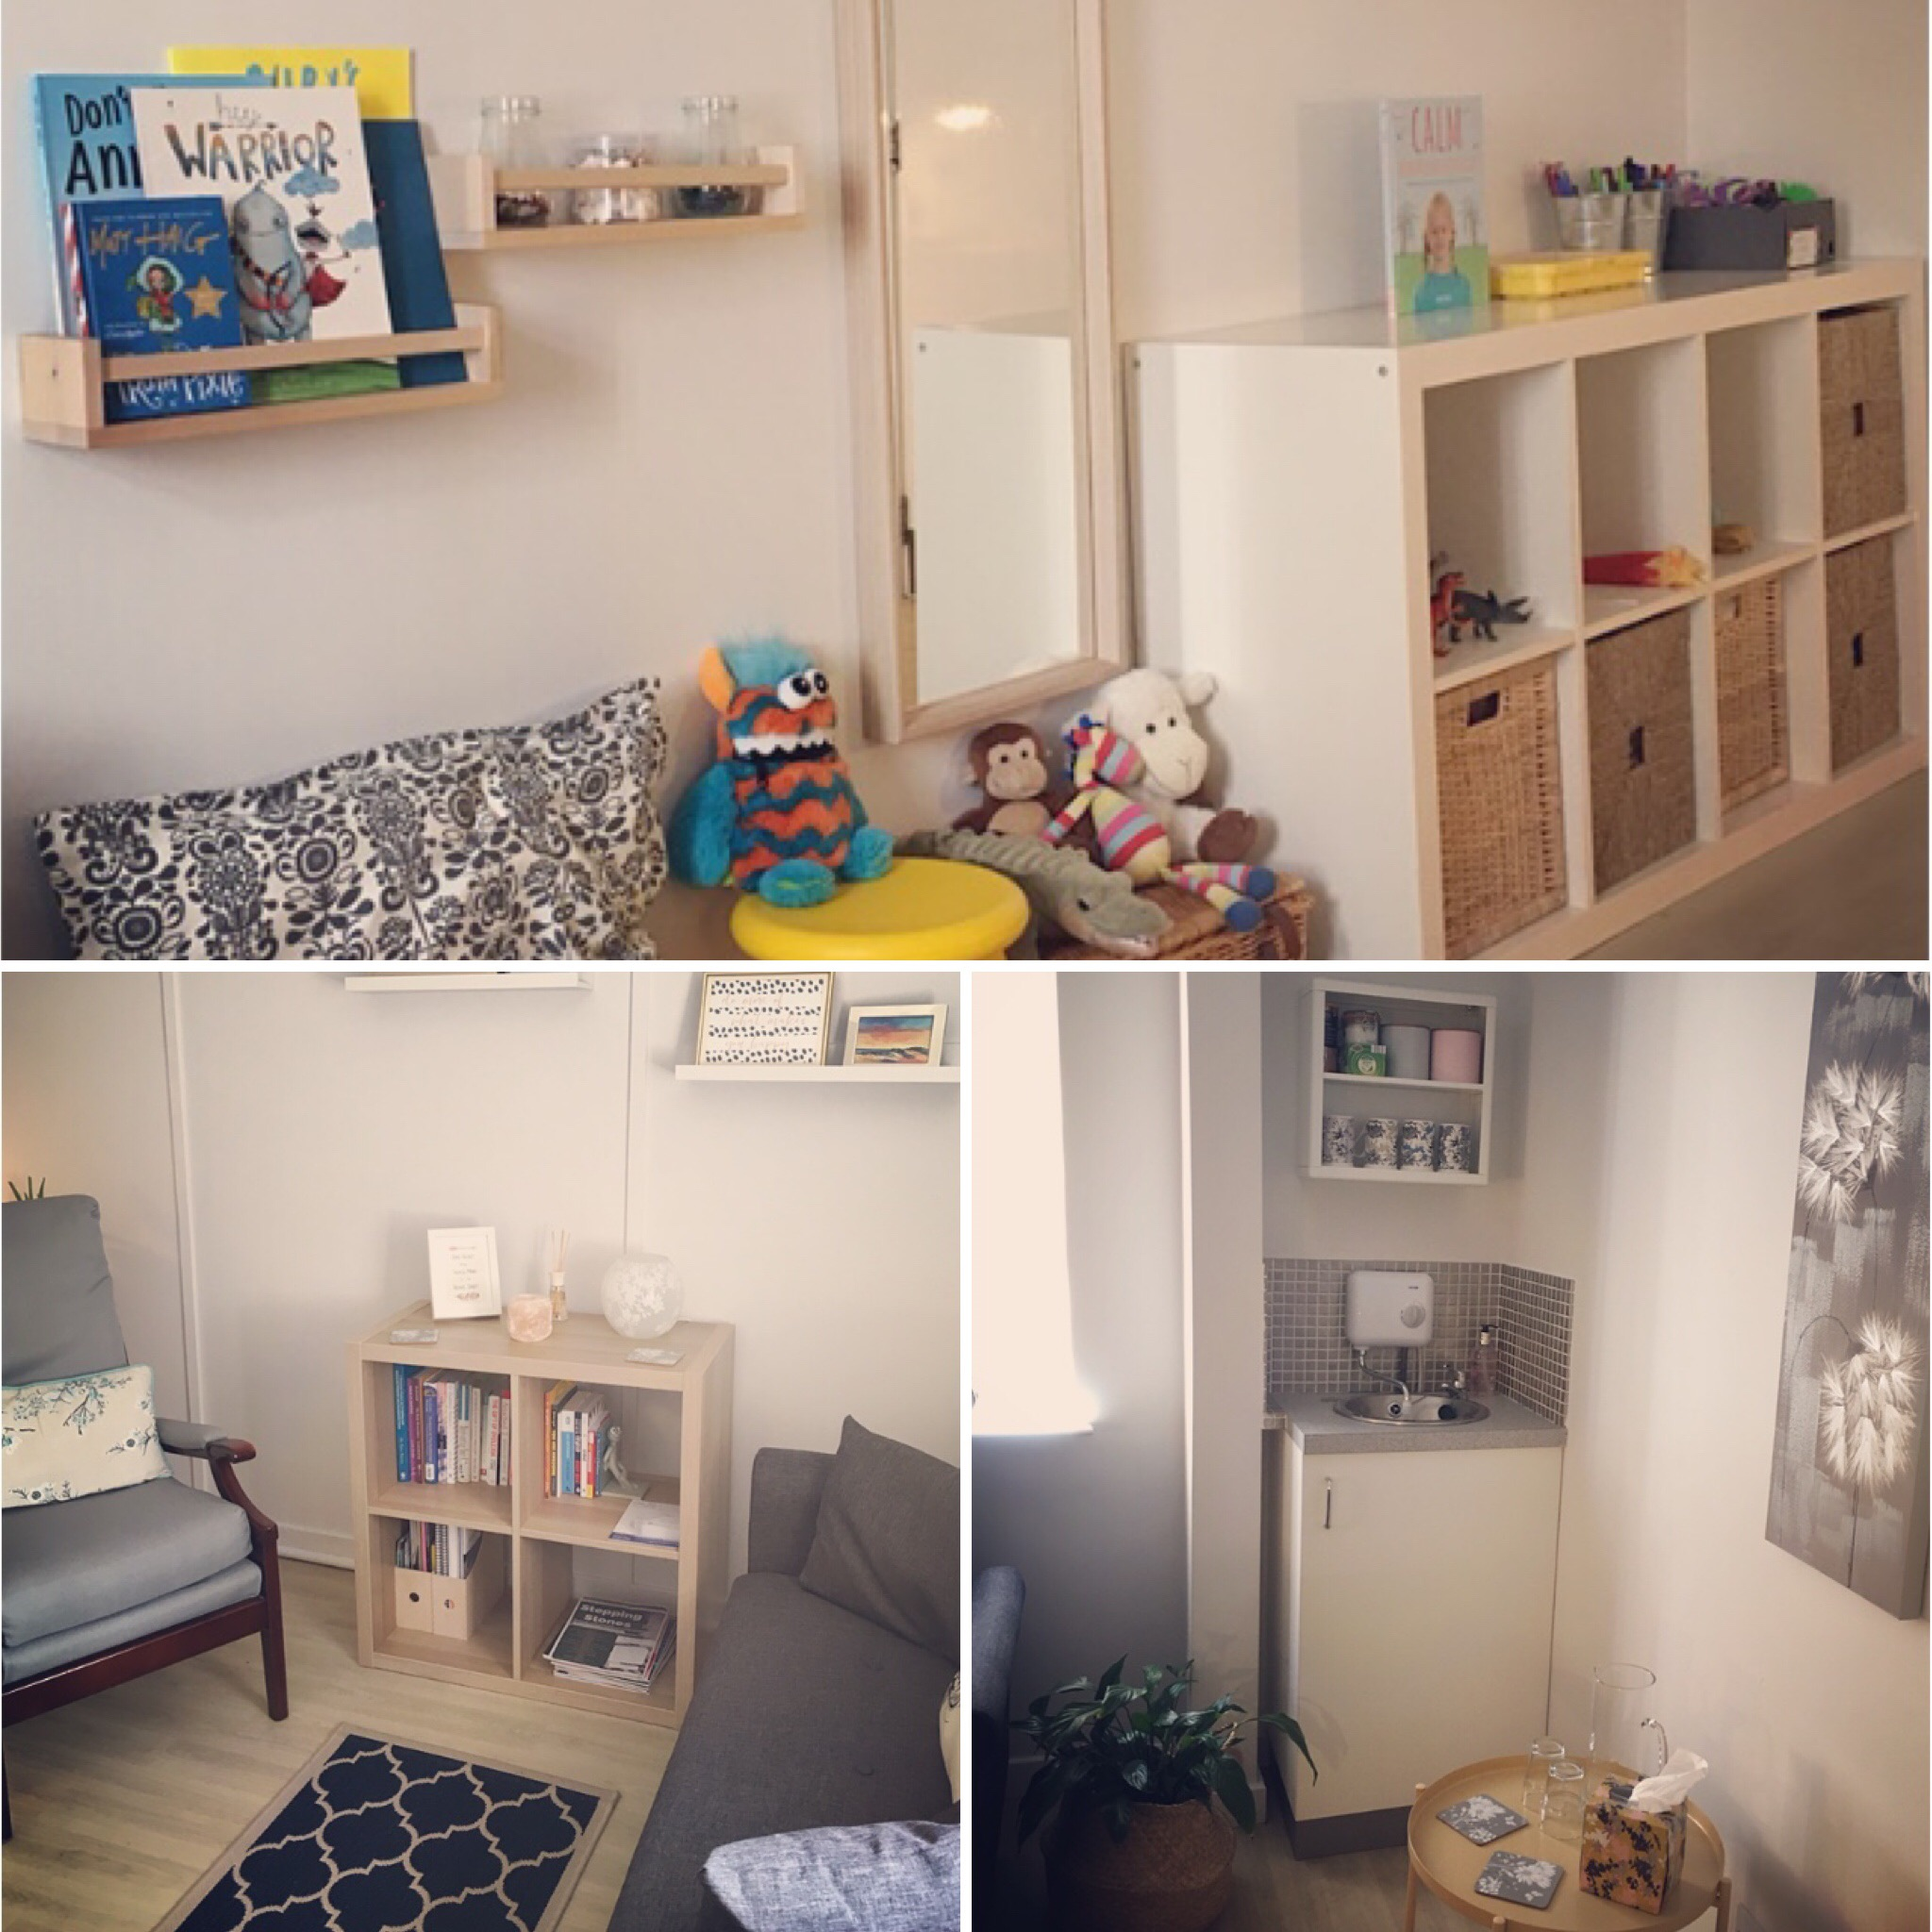 Sunrise Wellbeing - counselling therapy room